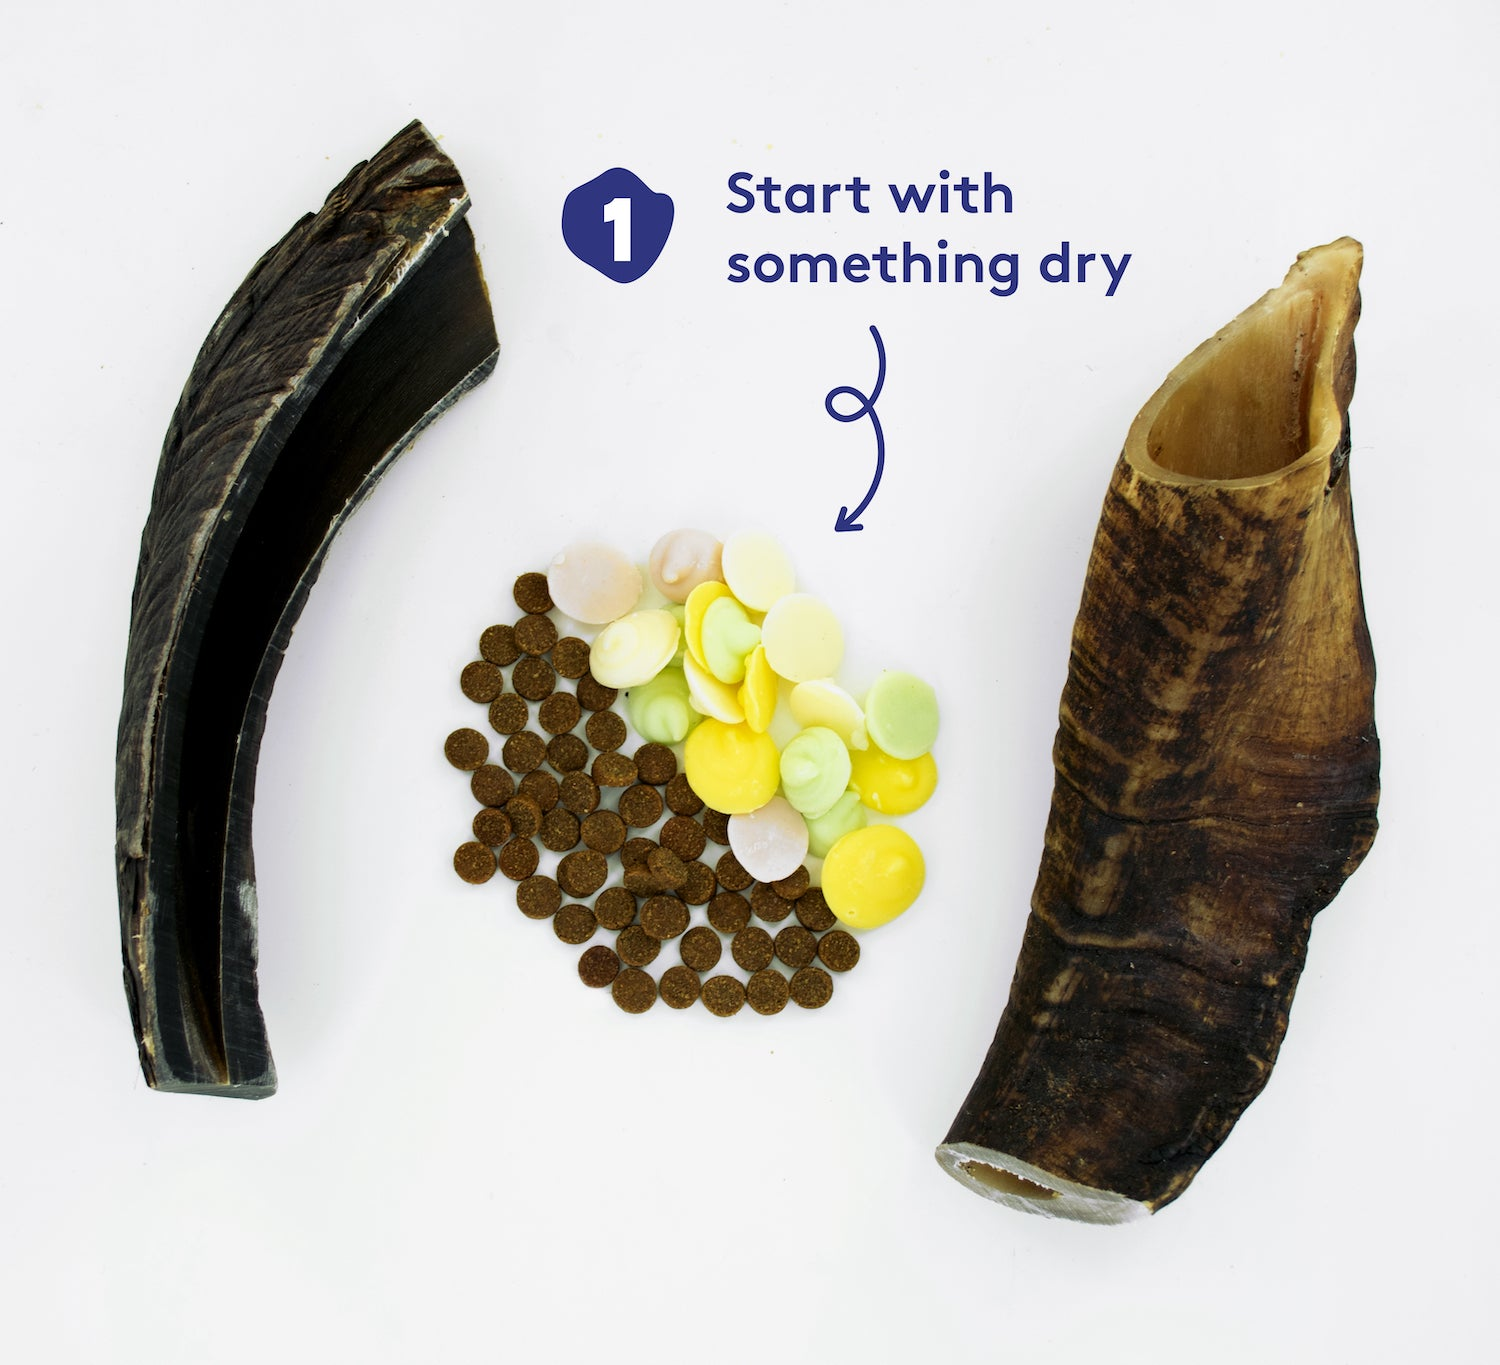 Two goat horns on a white surface, with yoghurt drops and dry dog food sitting between them. Text reads '1. Start with something dry'.